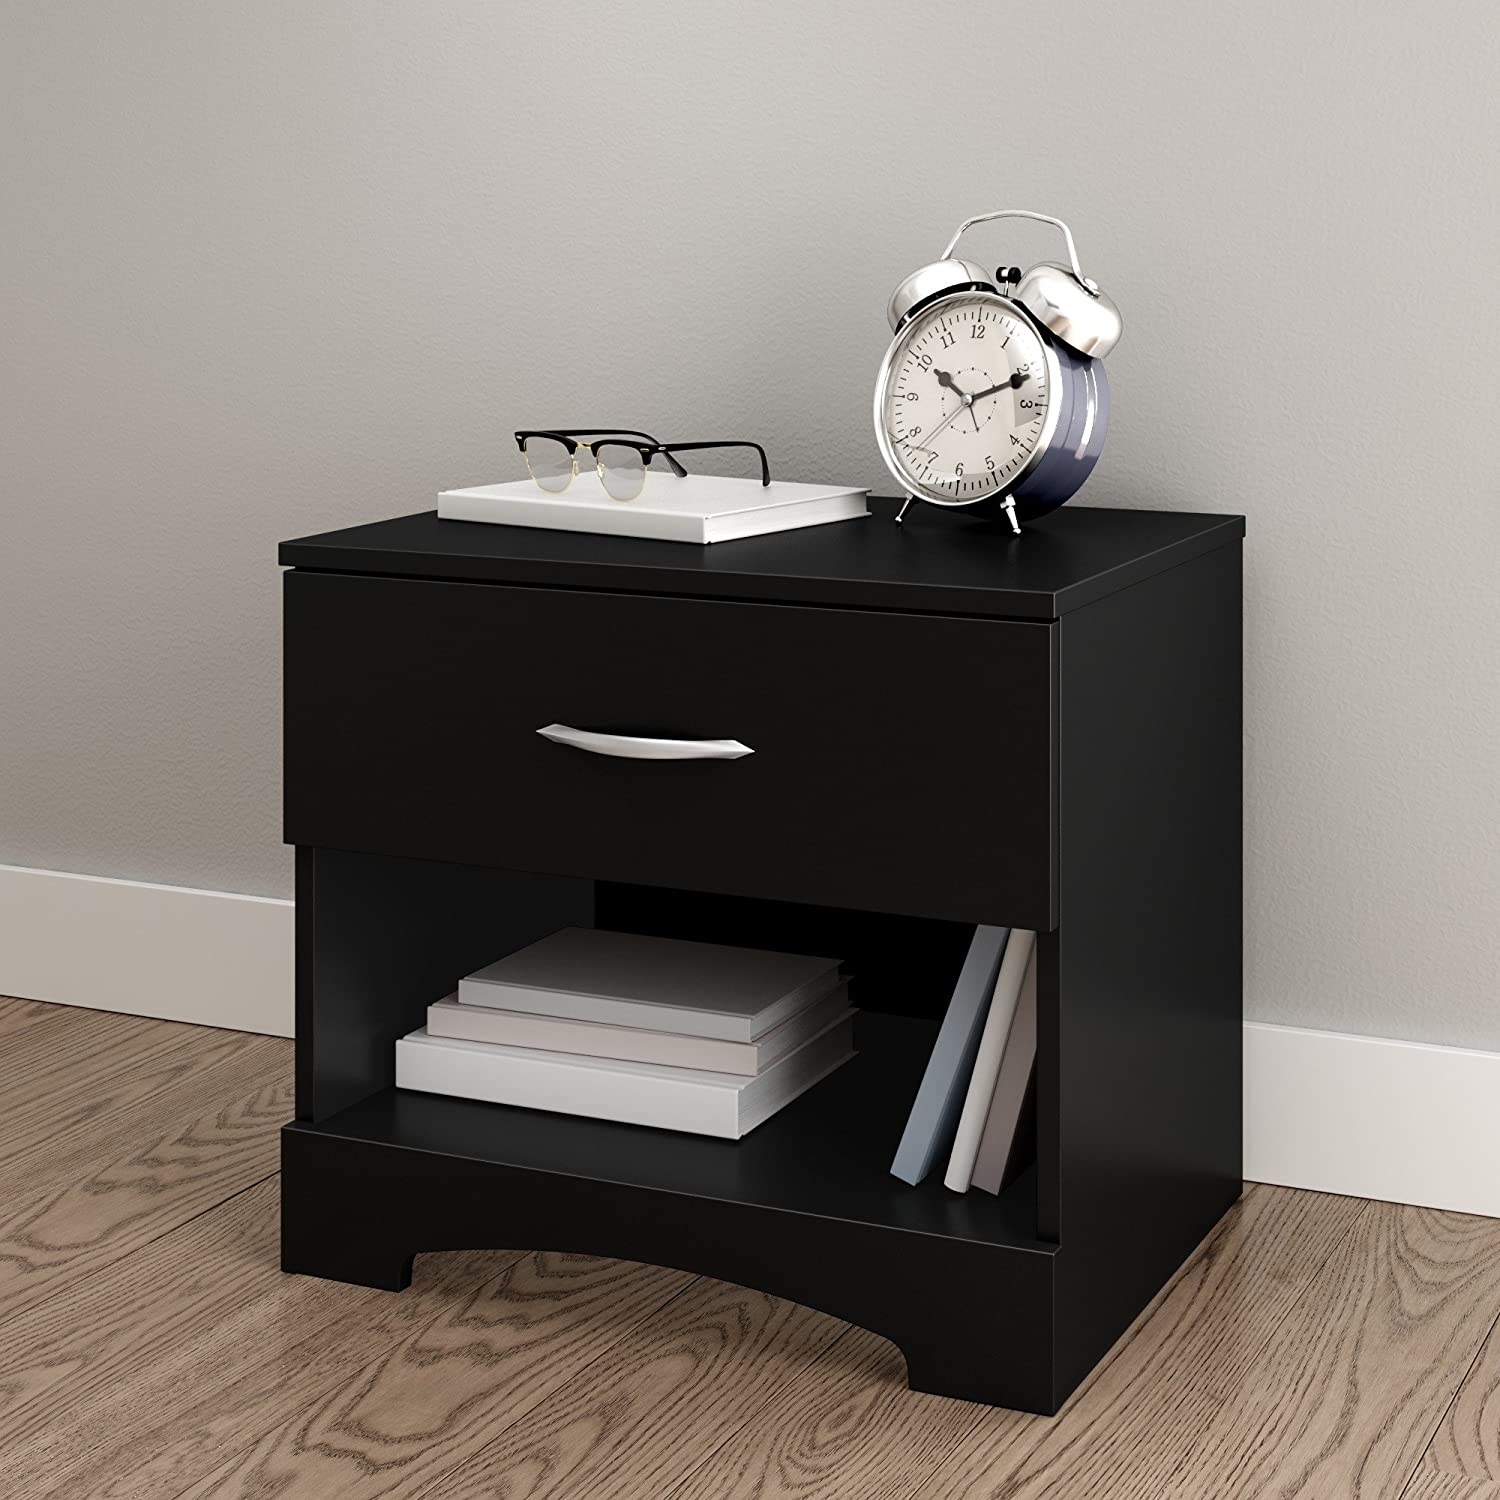 South Shore Step One 1-Drawer Nightstand, Chocolate with Matte Nickel Handles 3159062